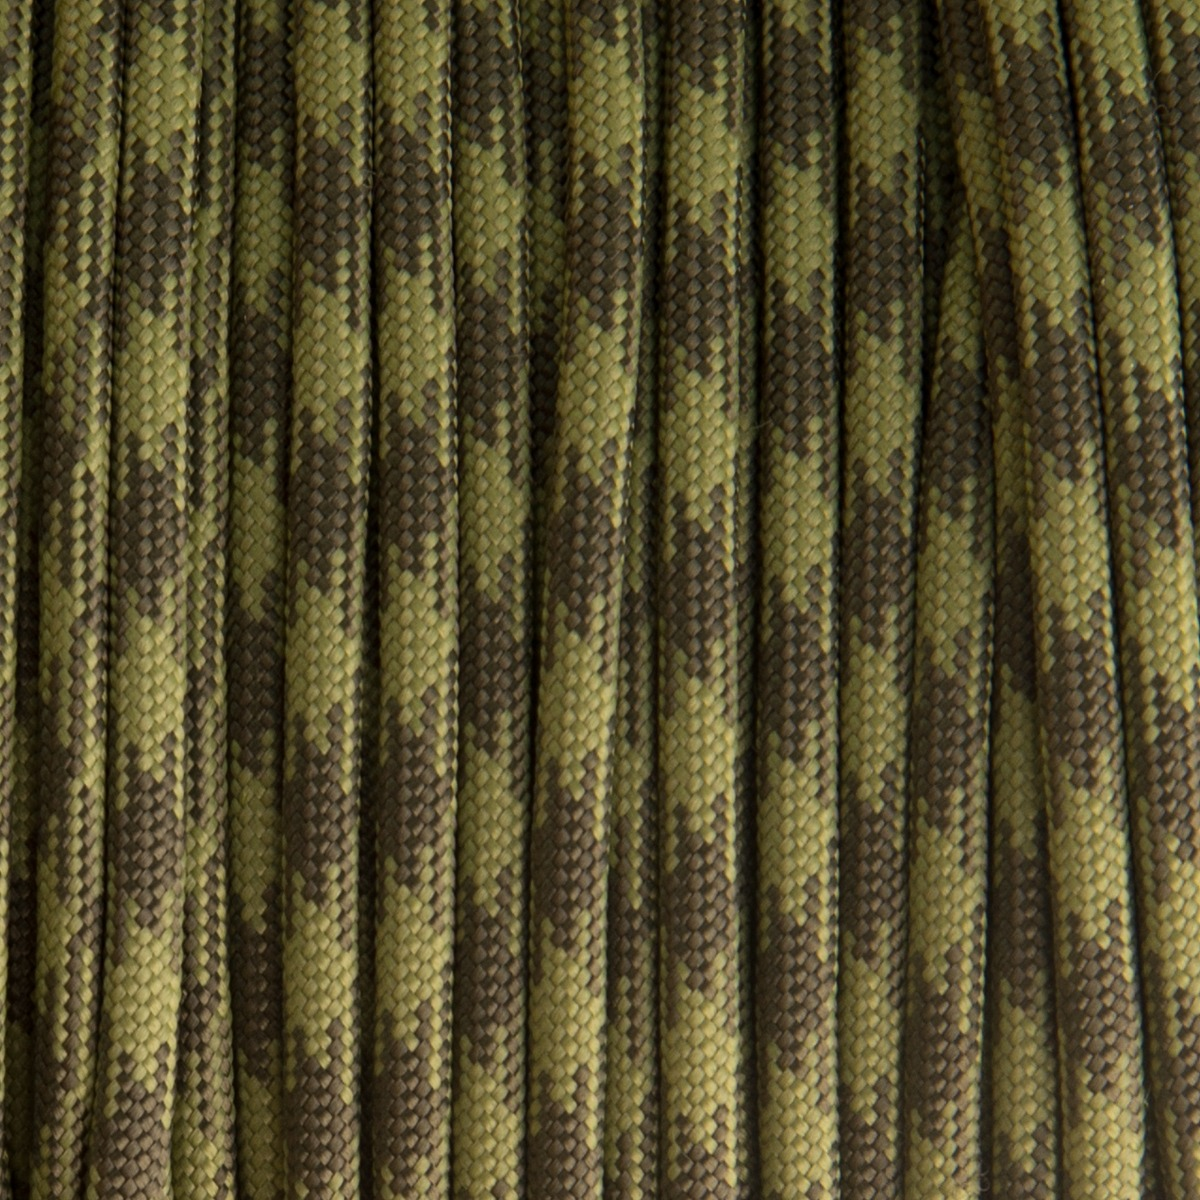 Olive Drab & Moss Paracord Type IV